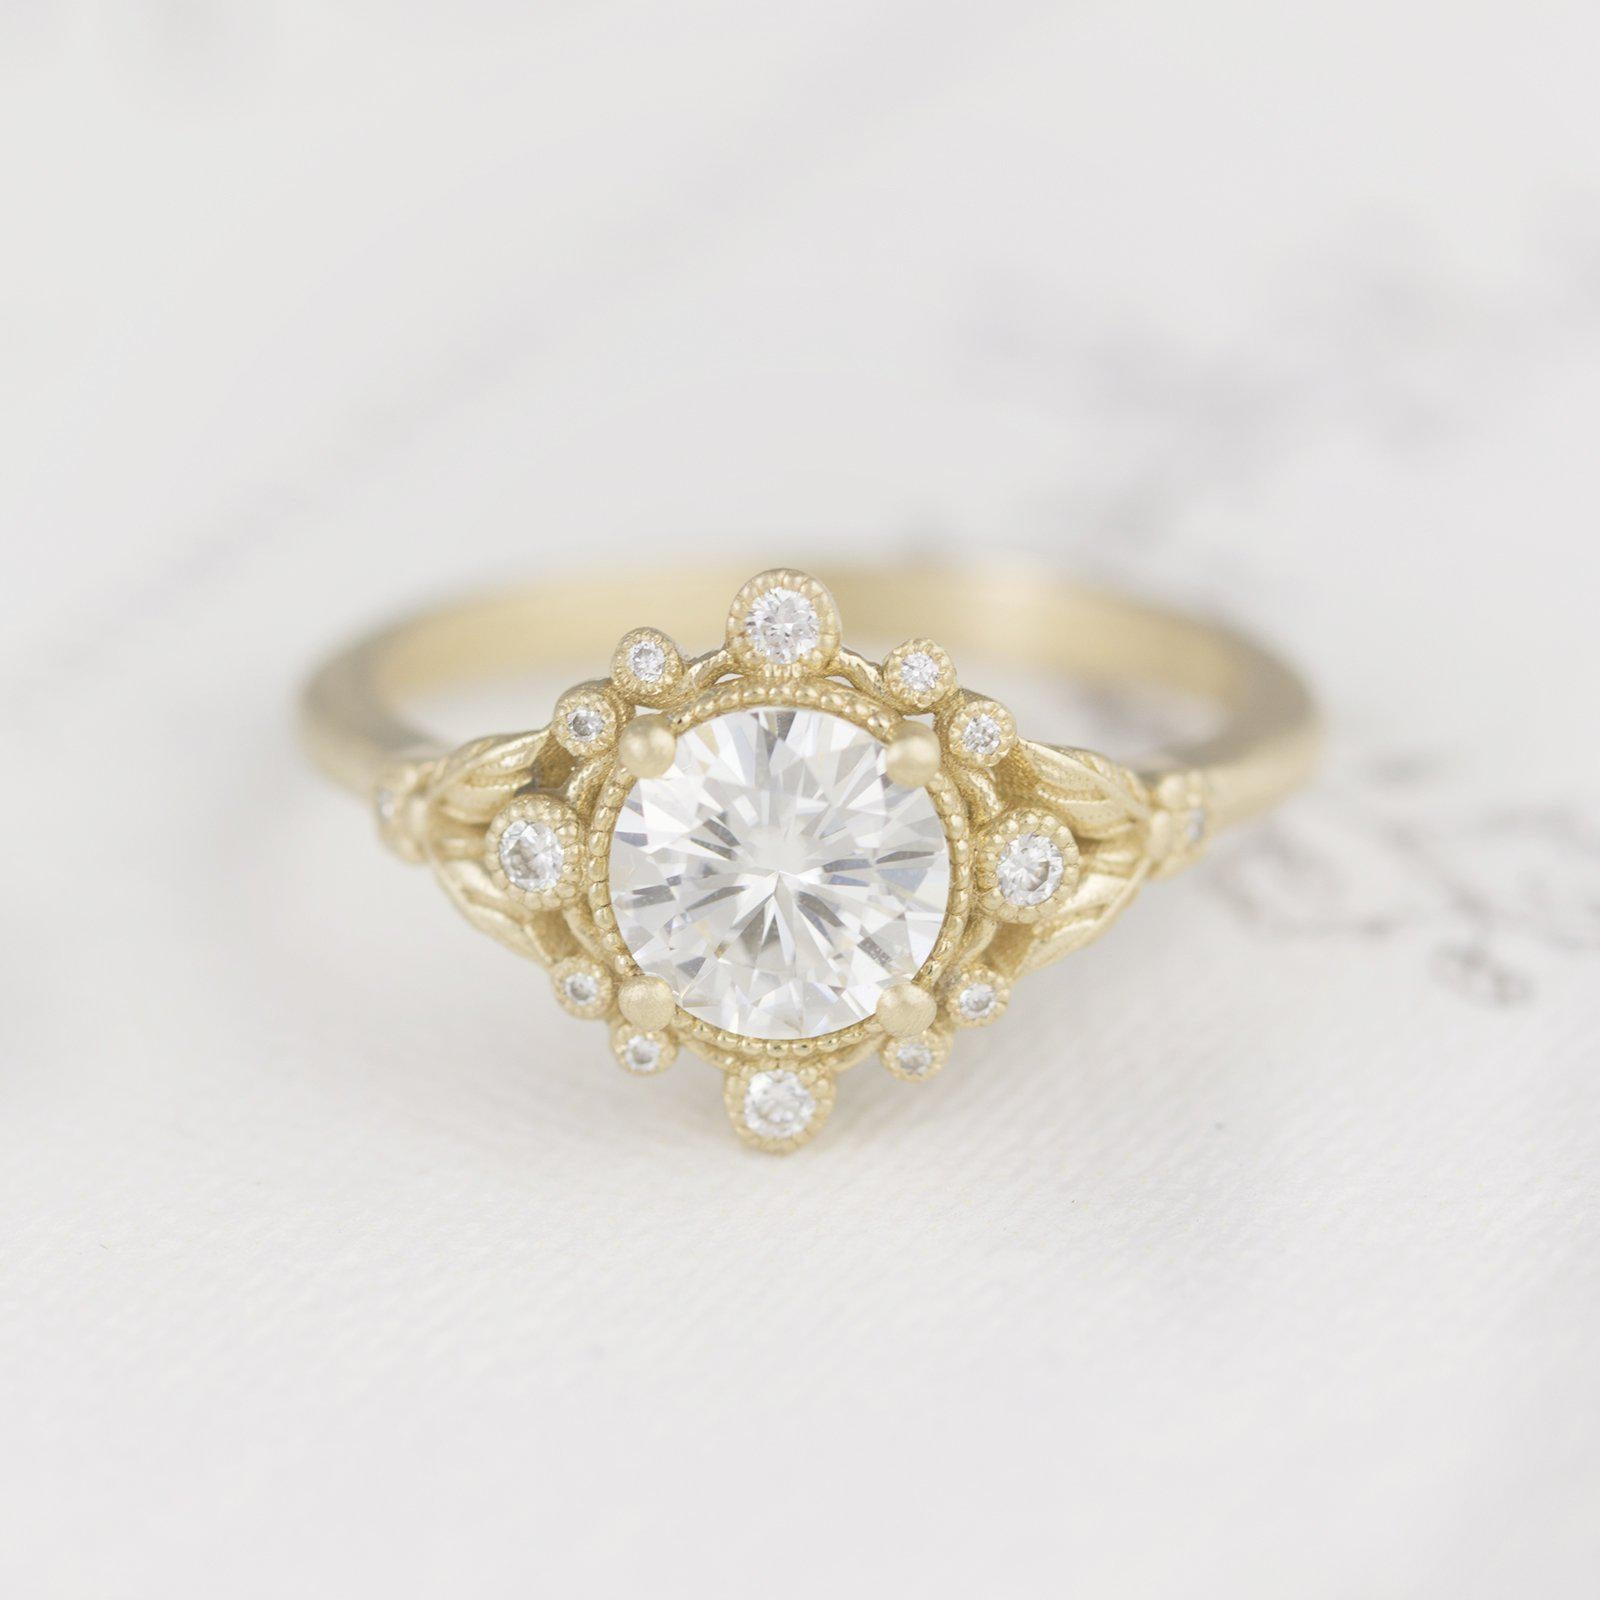 what does a 1 carat diamond ring cost